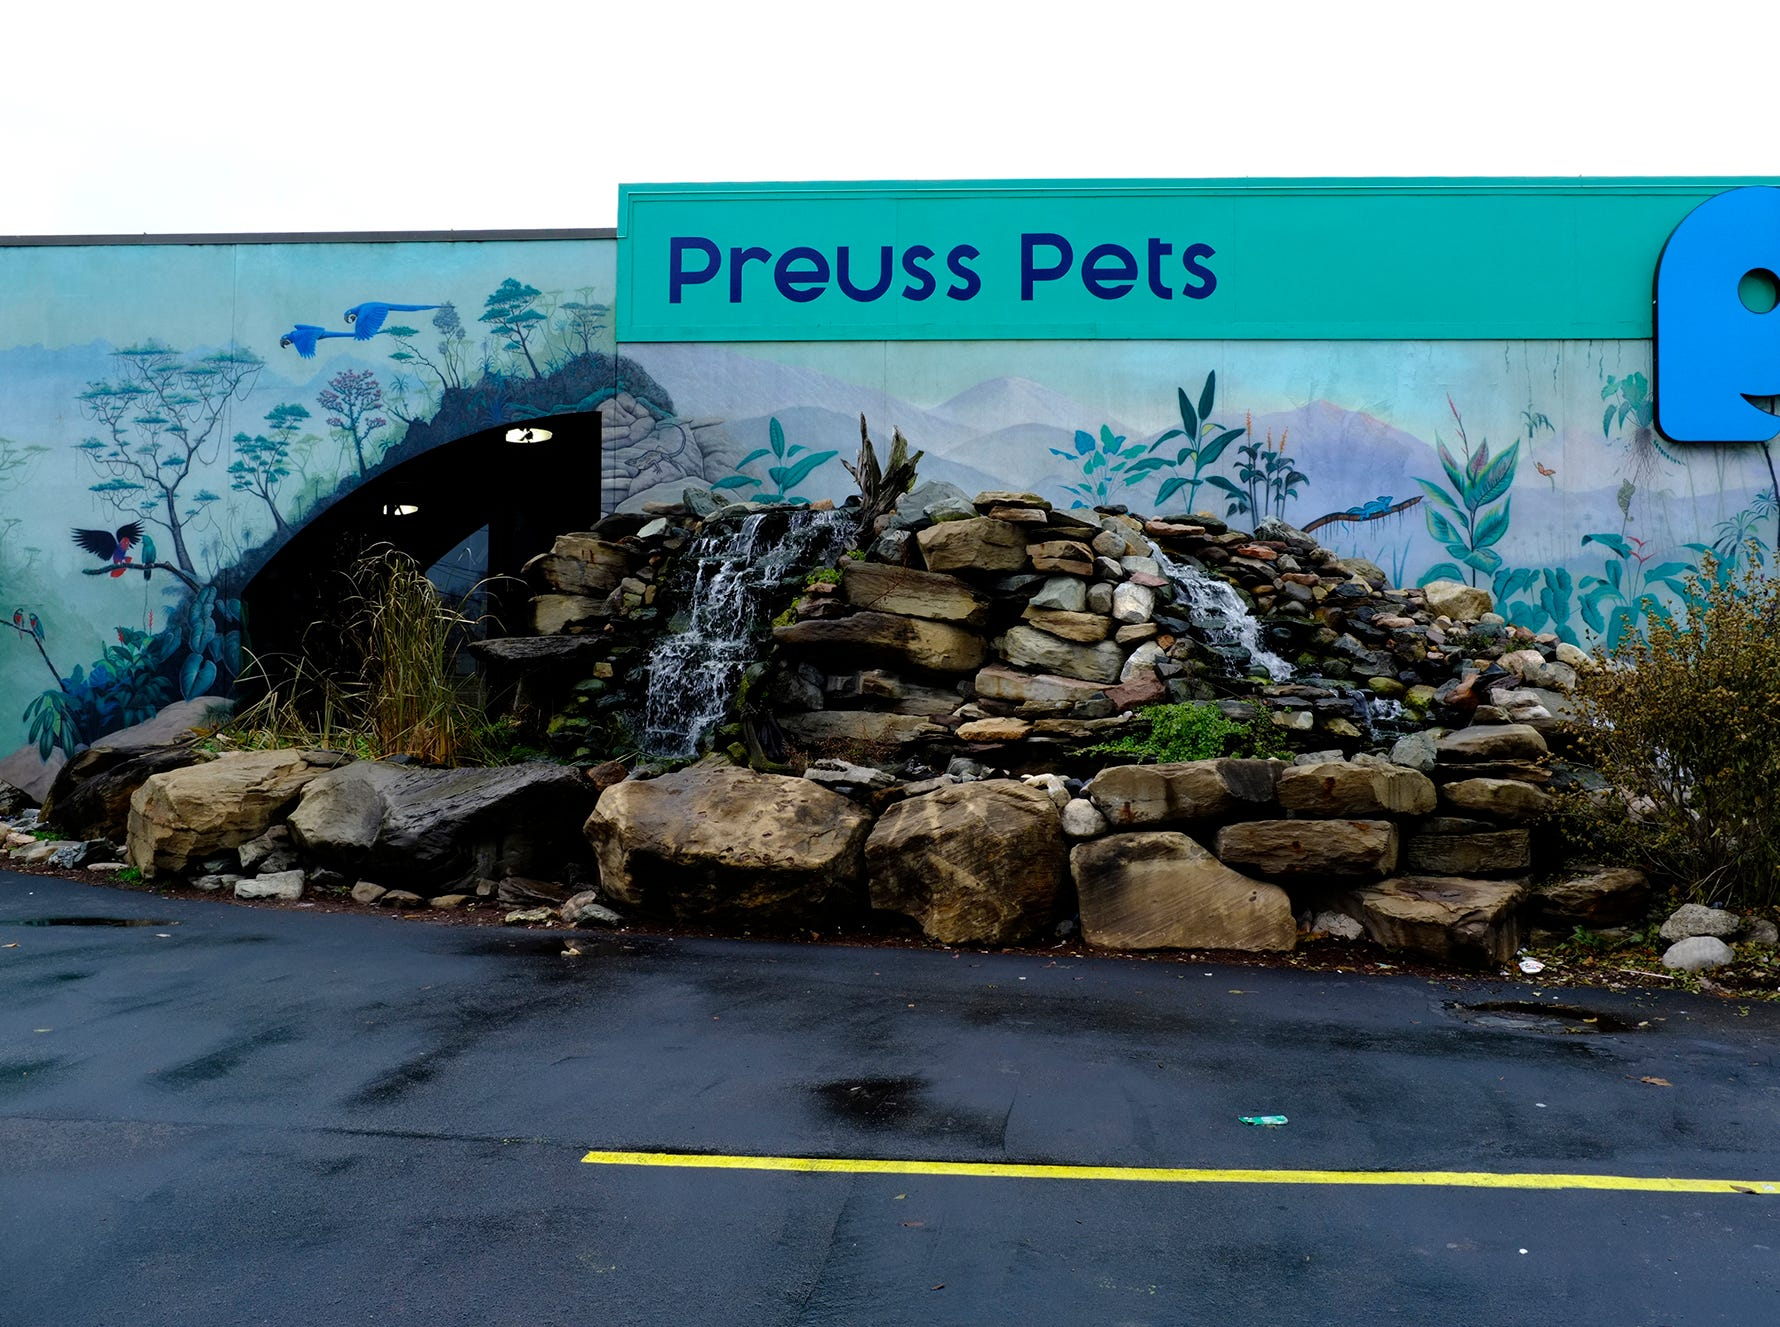 Preuss Pets at 1127 N. Cedar Street in Lansing's Old Town fittingly displays an aquarium theme on its building.